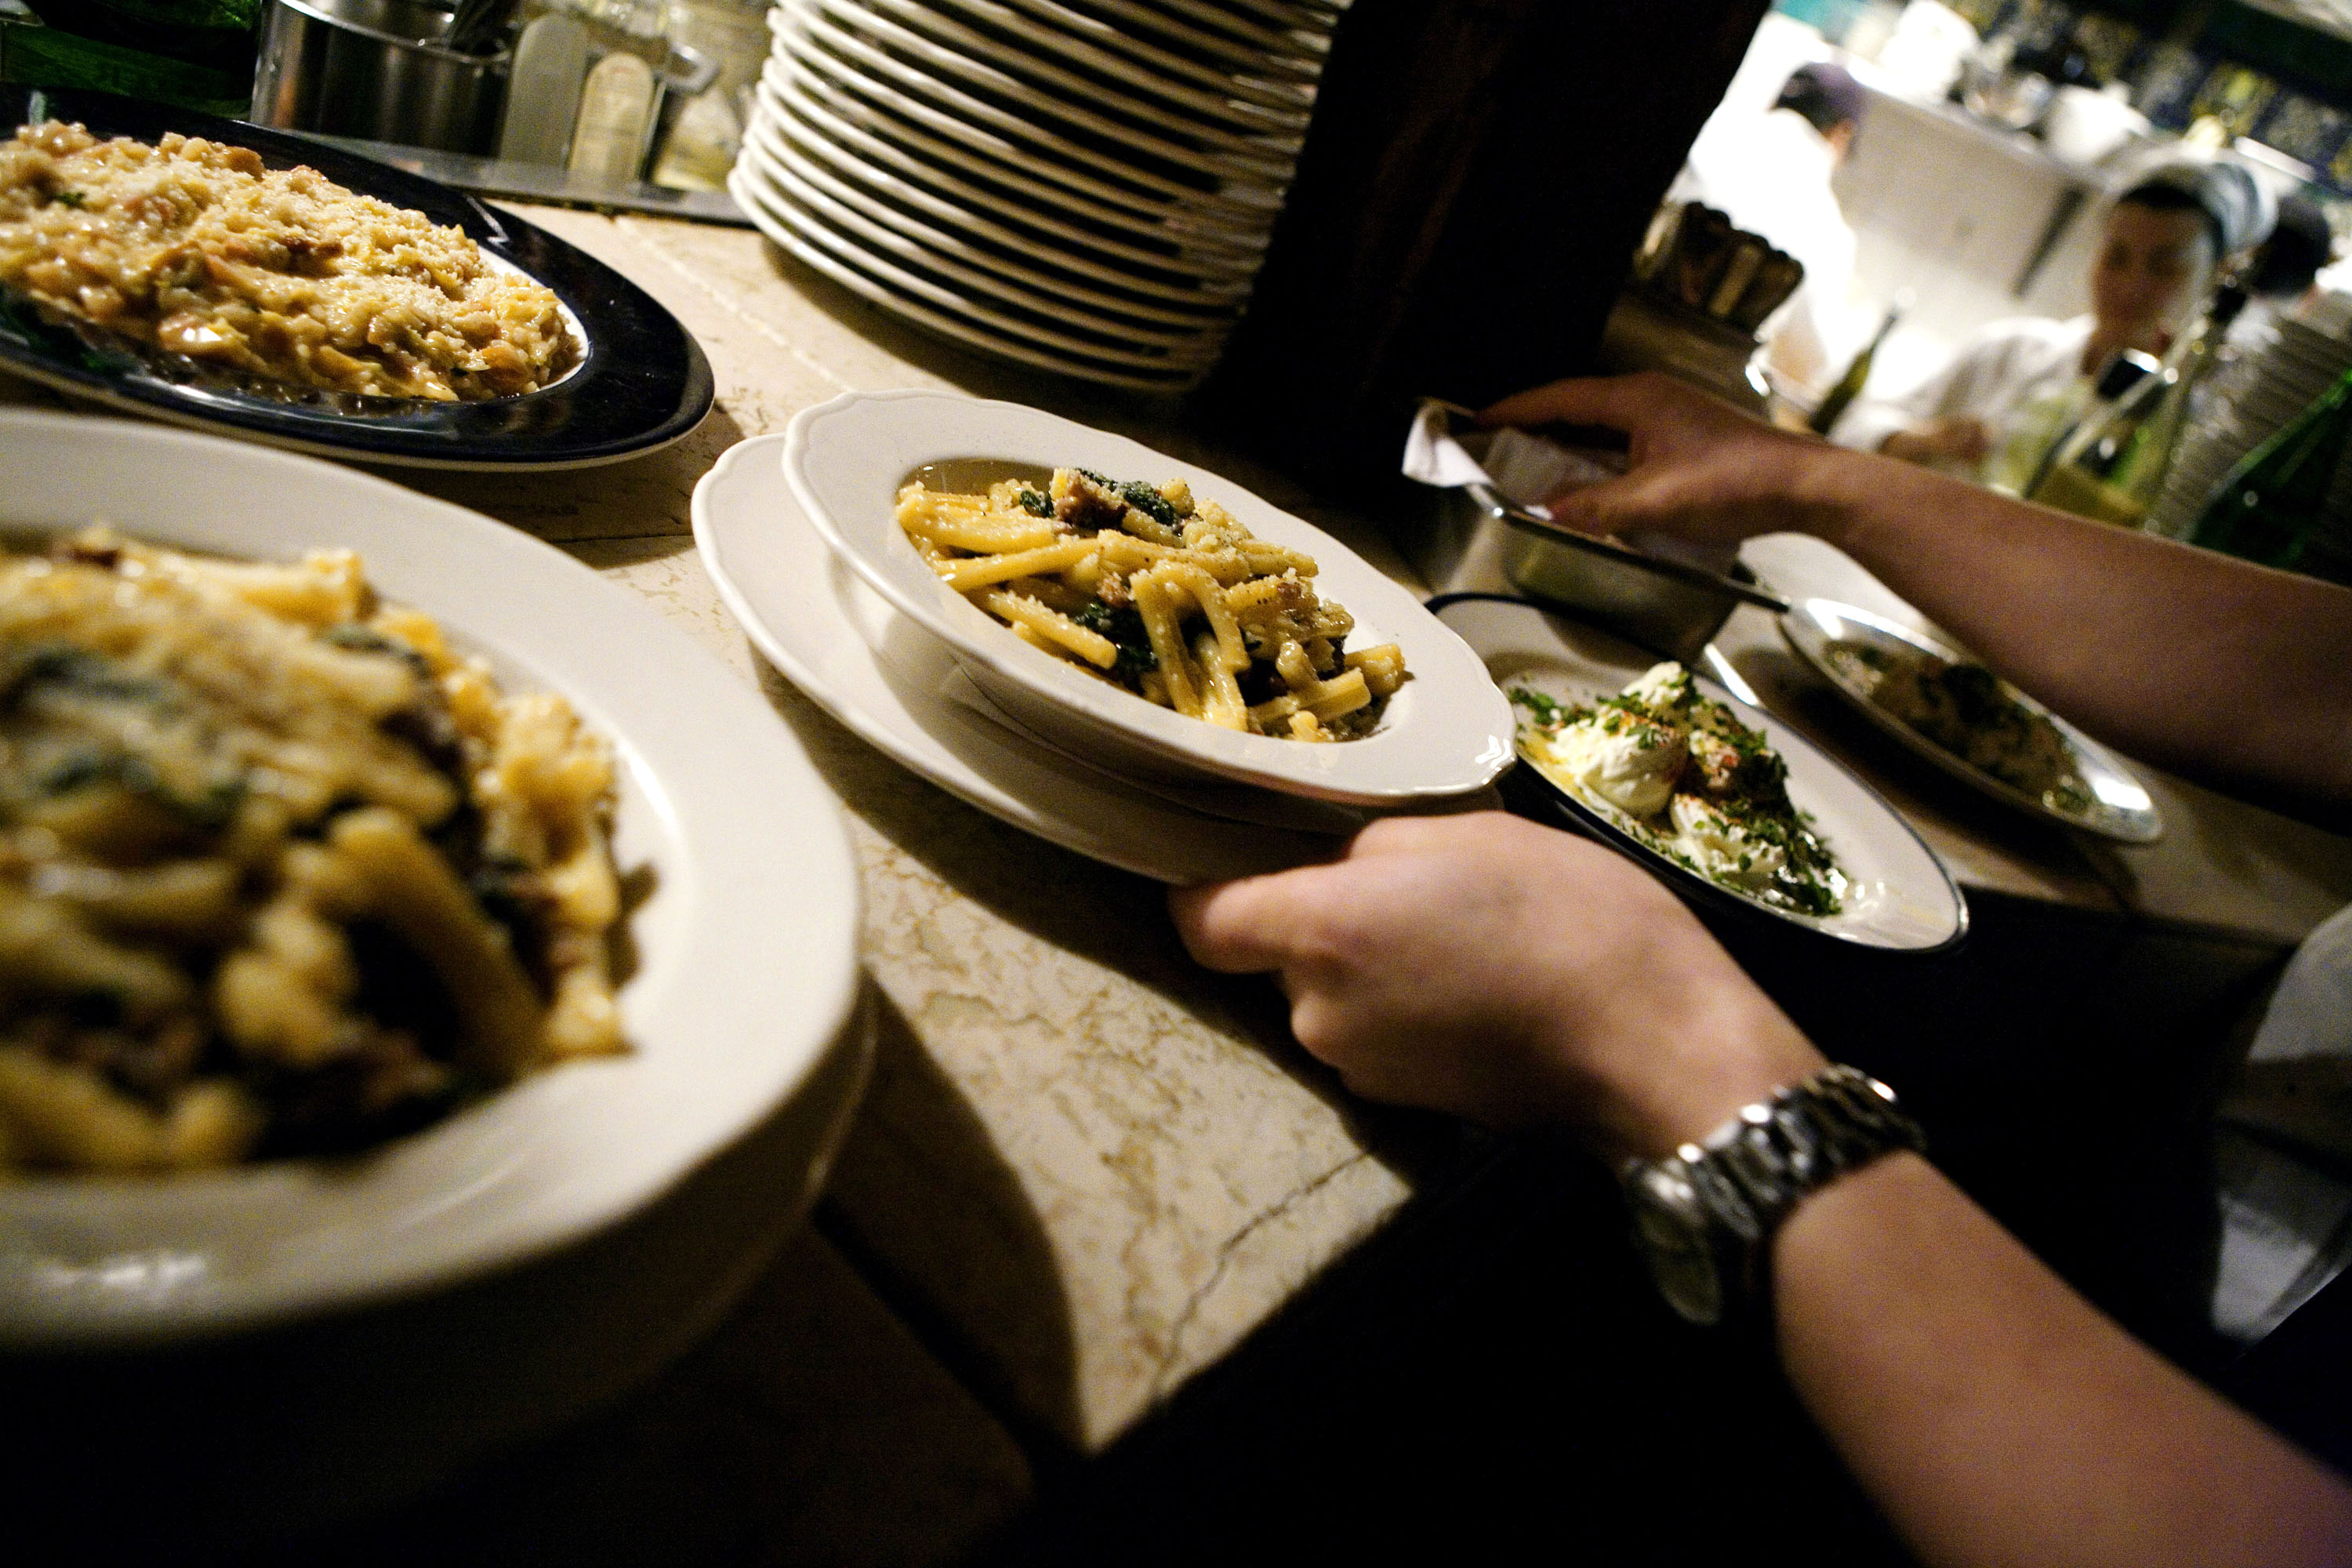 The Minimum Wage Goes Up More Restaurants Open And Employ More Workers